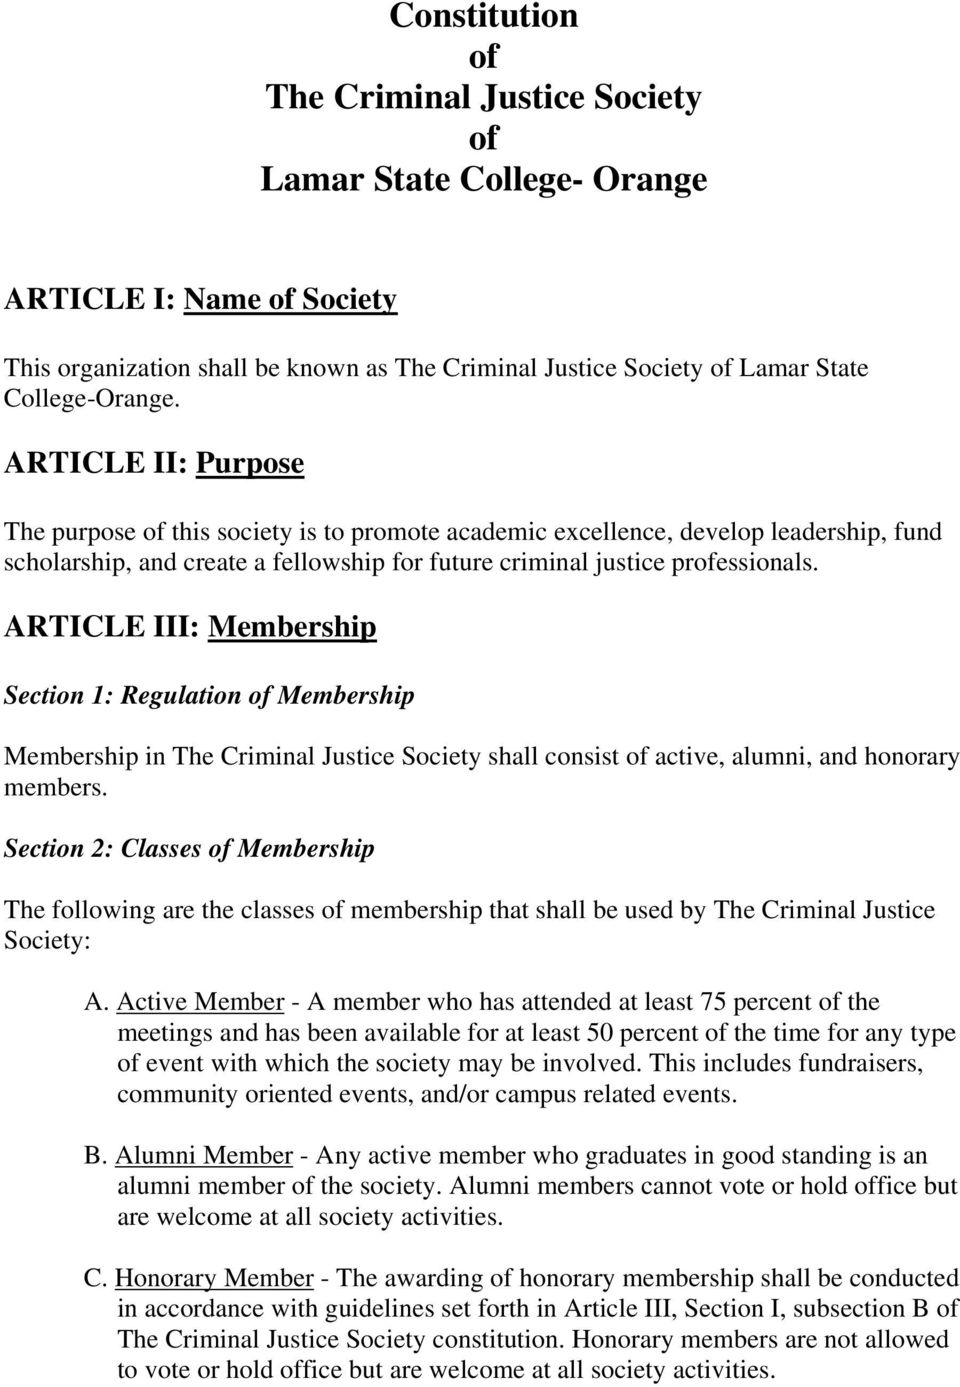 ARTICLE III: Membership Section 1: Regulation of Membership Membership in The Criminal Justice Society shall consist of active, alumni, and honorary members.